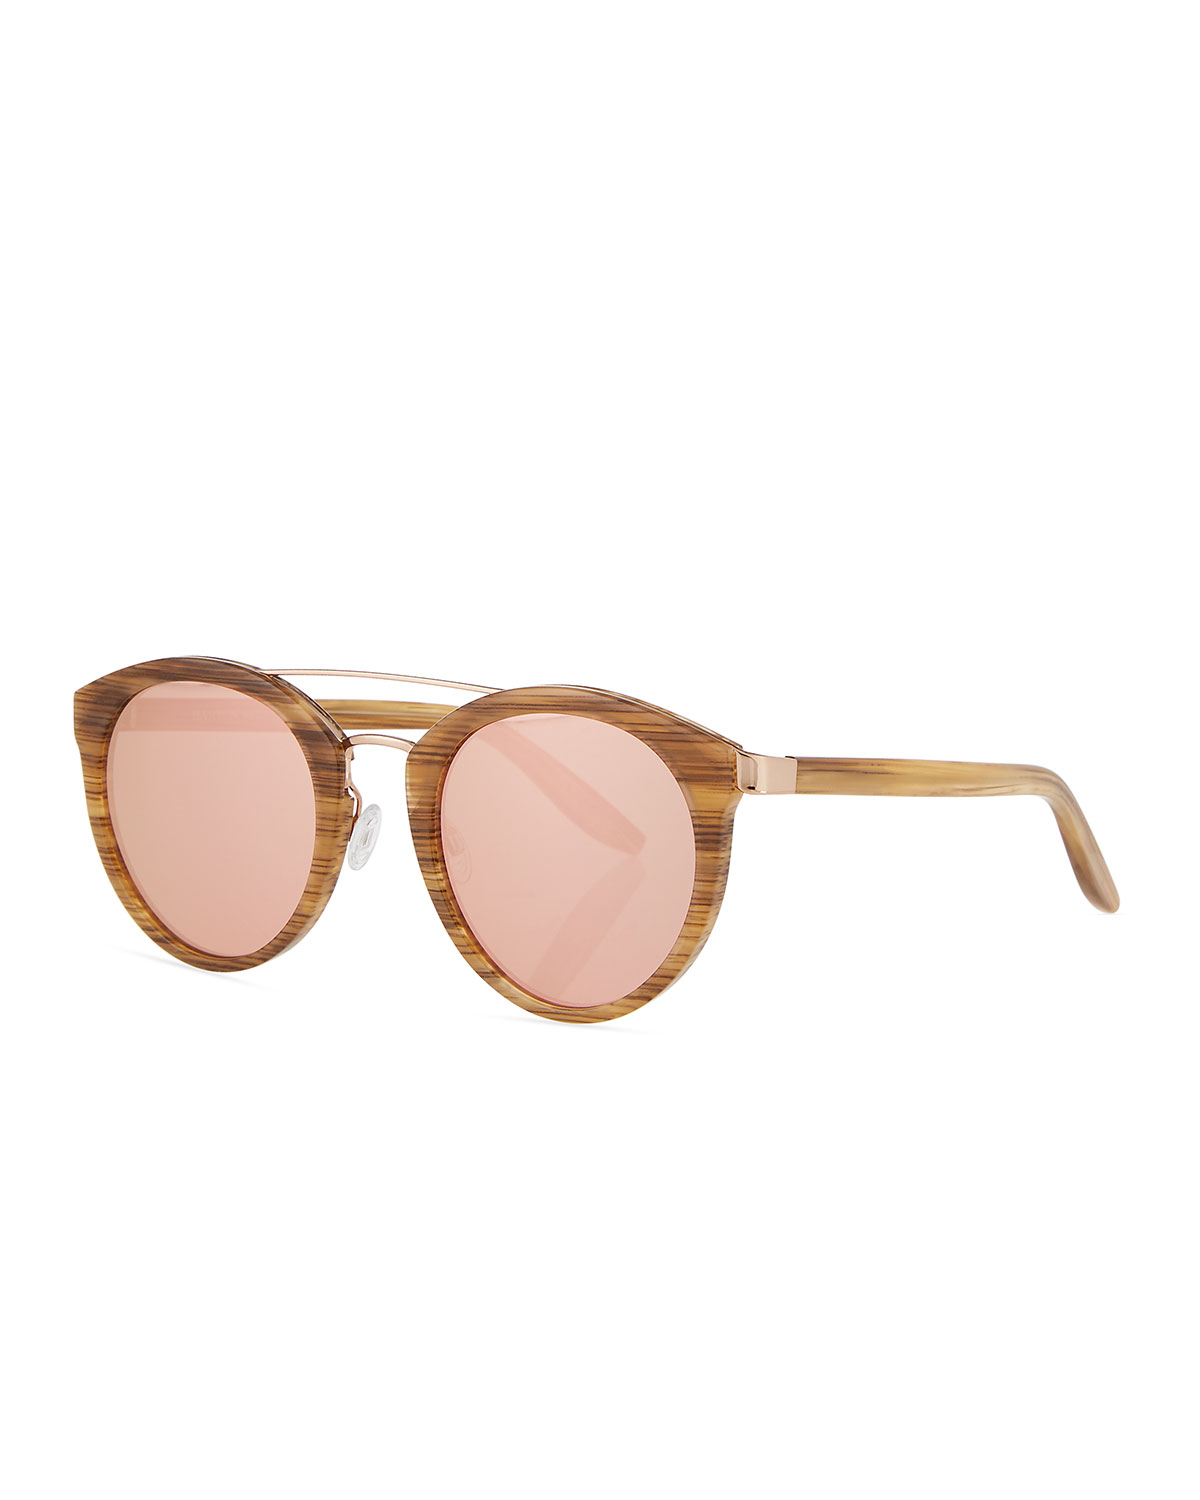 Barton Perreira DALZIEL ROUND UNIVERSAL-FIT SUNGLASSES, HORN/ROSE GOLD/LAVENDER